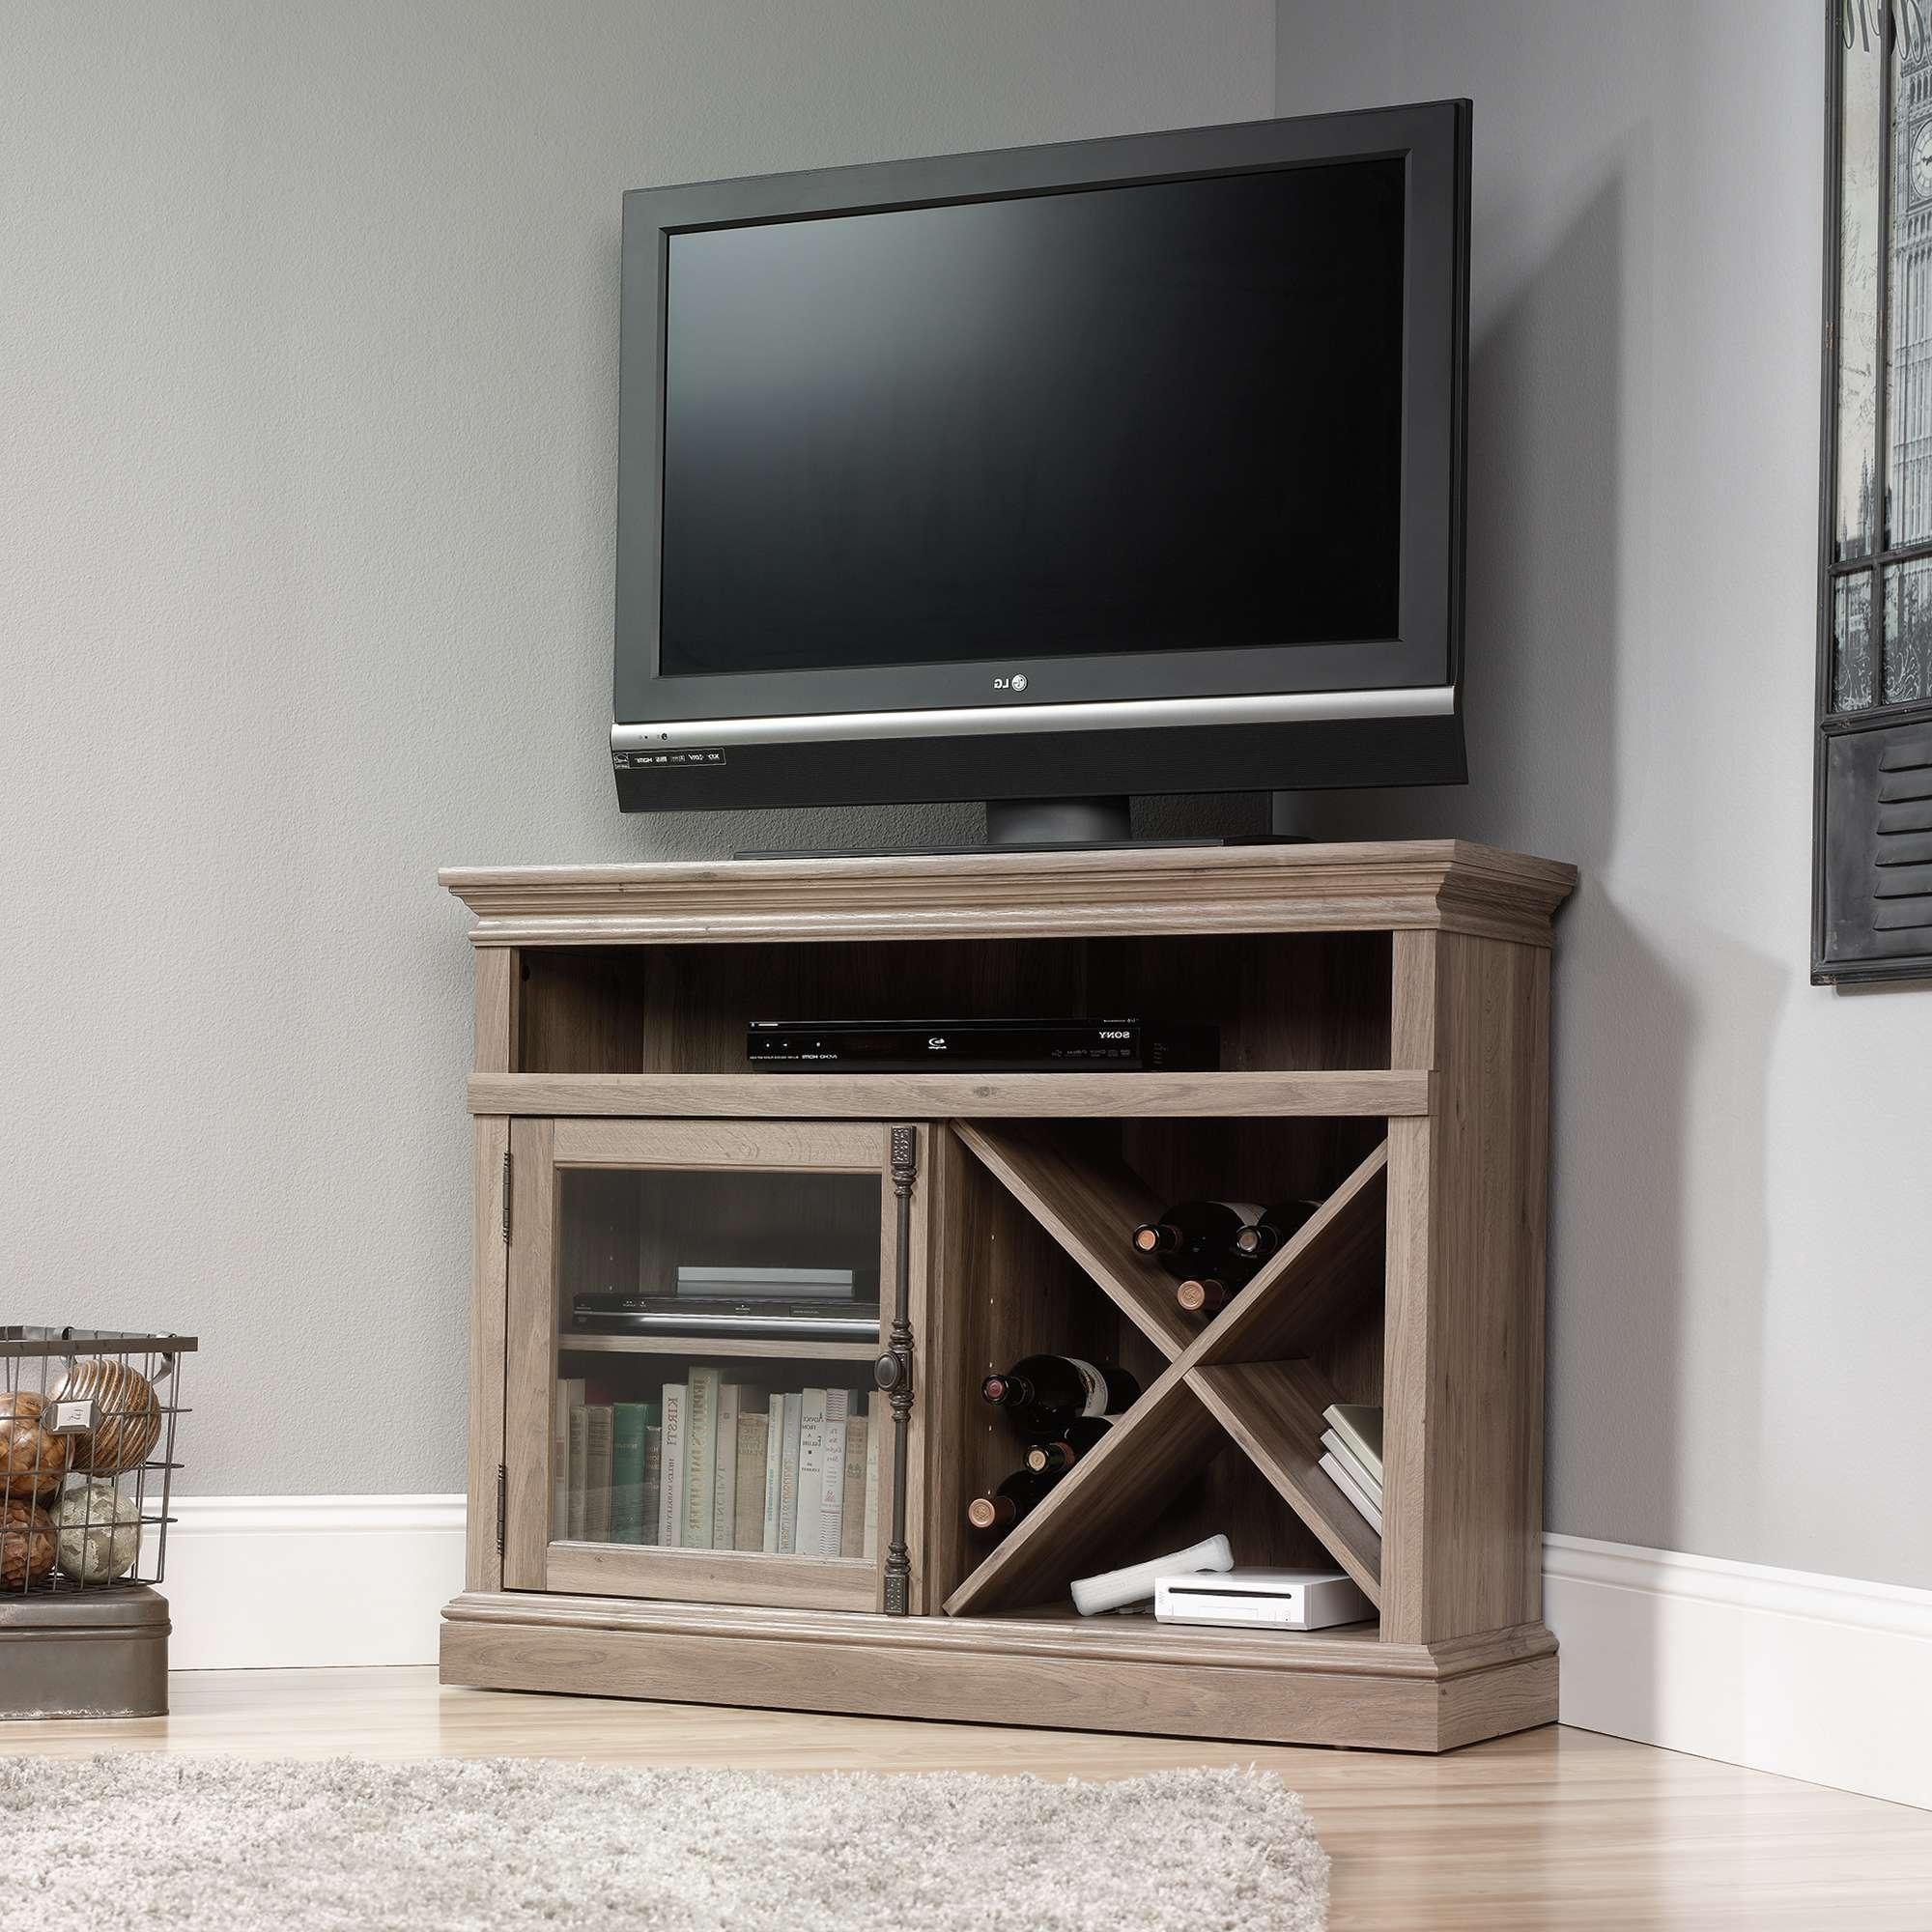 Barrister Lane | Corner Tv Stand | 414729 | Sauder With Regard To Cornet Tv Stands (View 2 of 15)